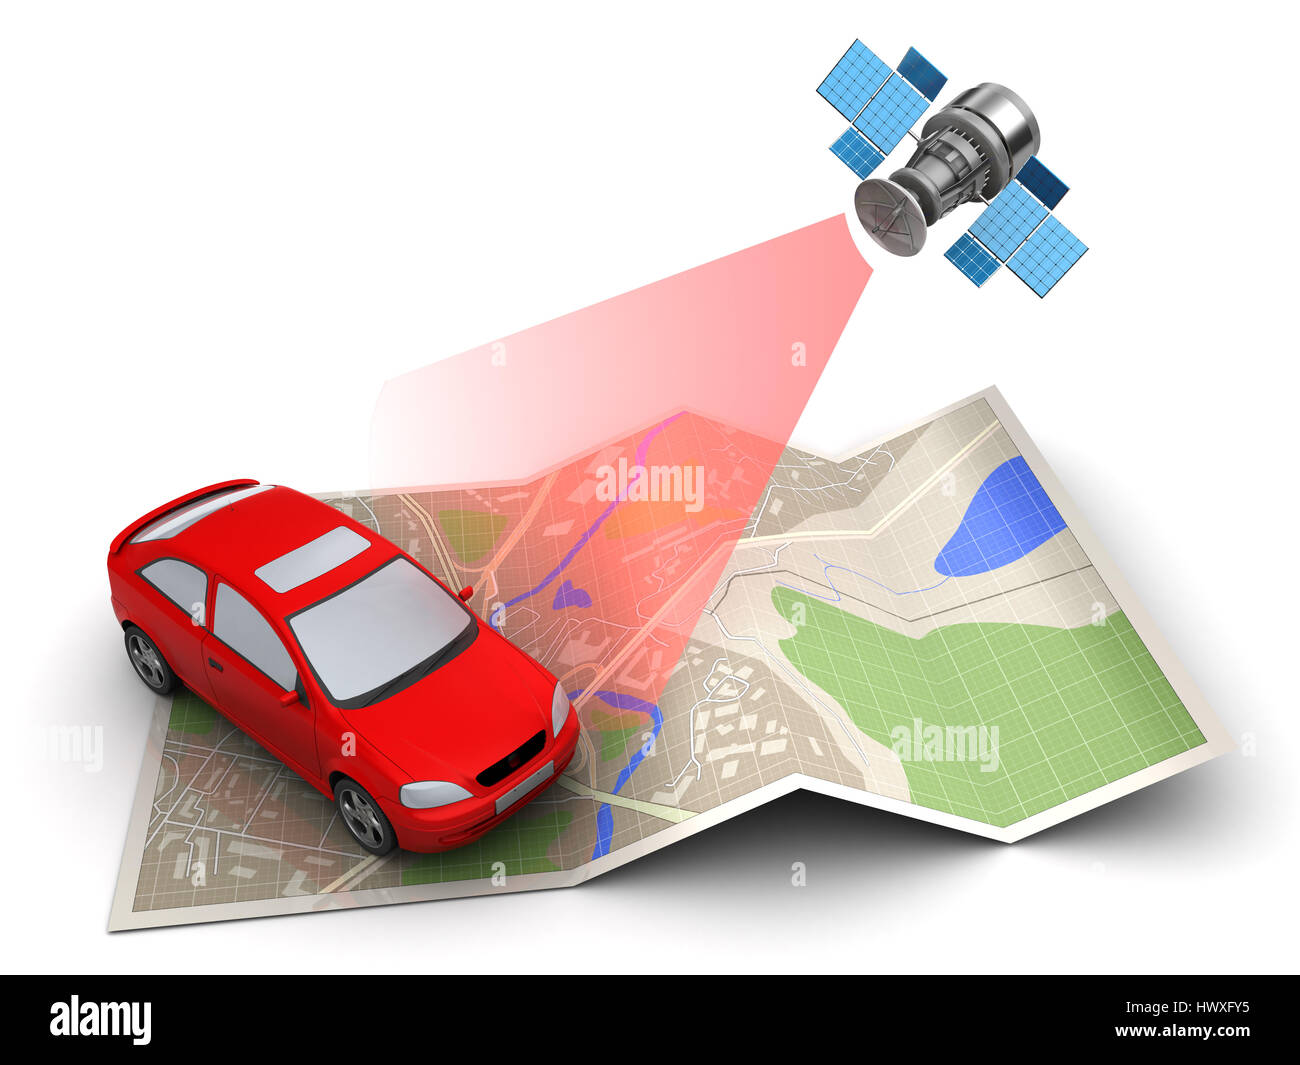 3d illustration of car location tracking with satellite navigation - Stock Image